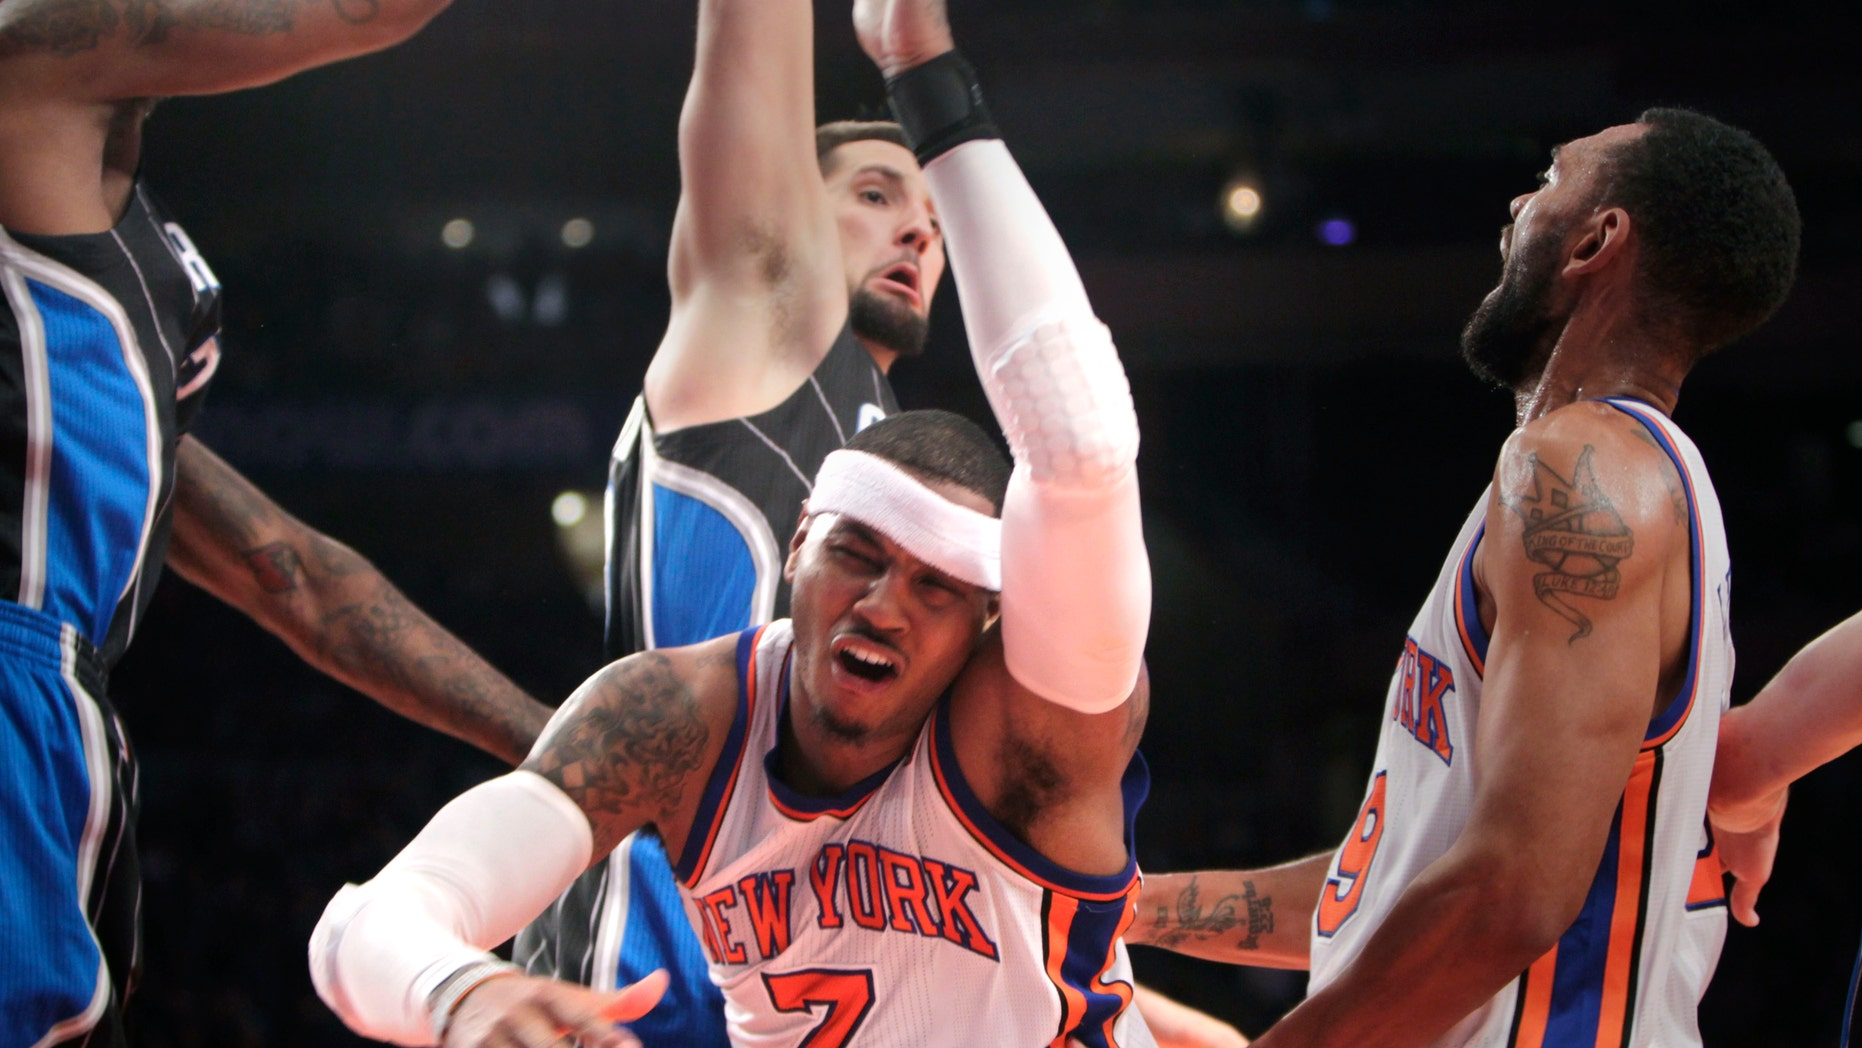 New York Knicks' Carmelo Anthony, center, is knocked down while going for a basket during the first half of an NBA basketball game in New York, Monday, Jan. 16, 2012.  (AP Photo/Seth Wenig)